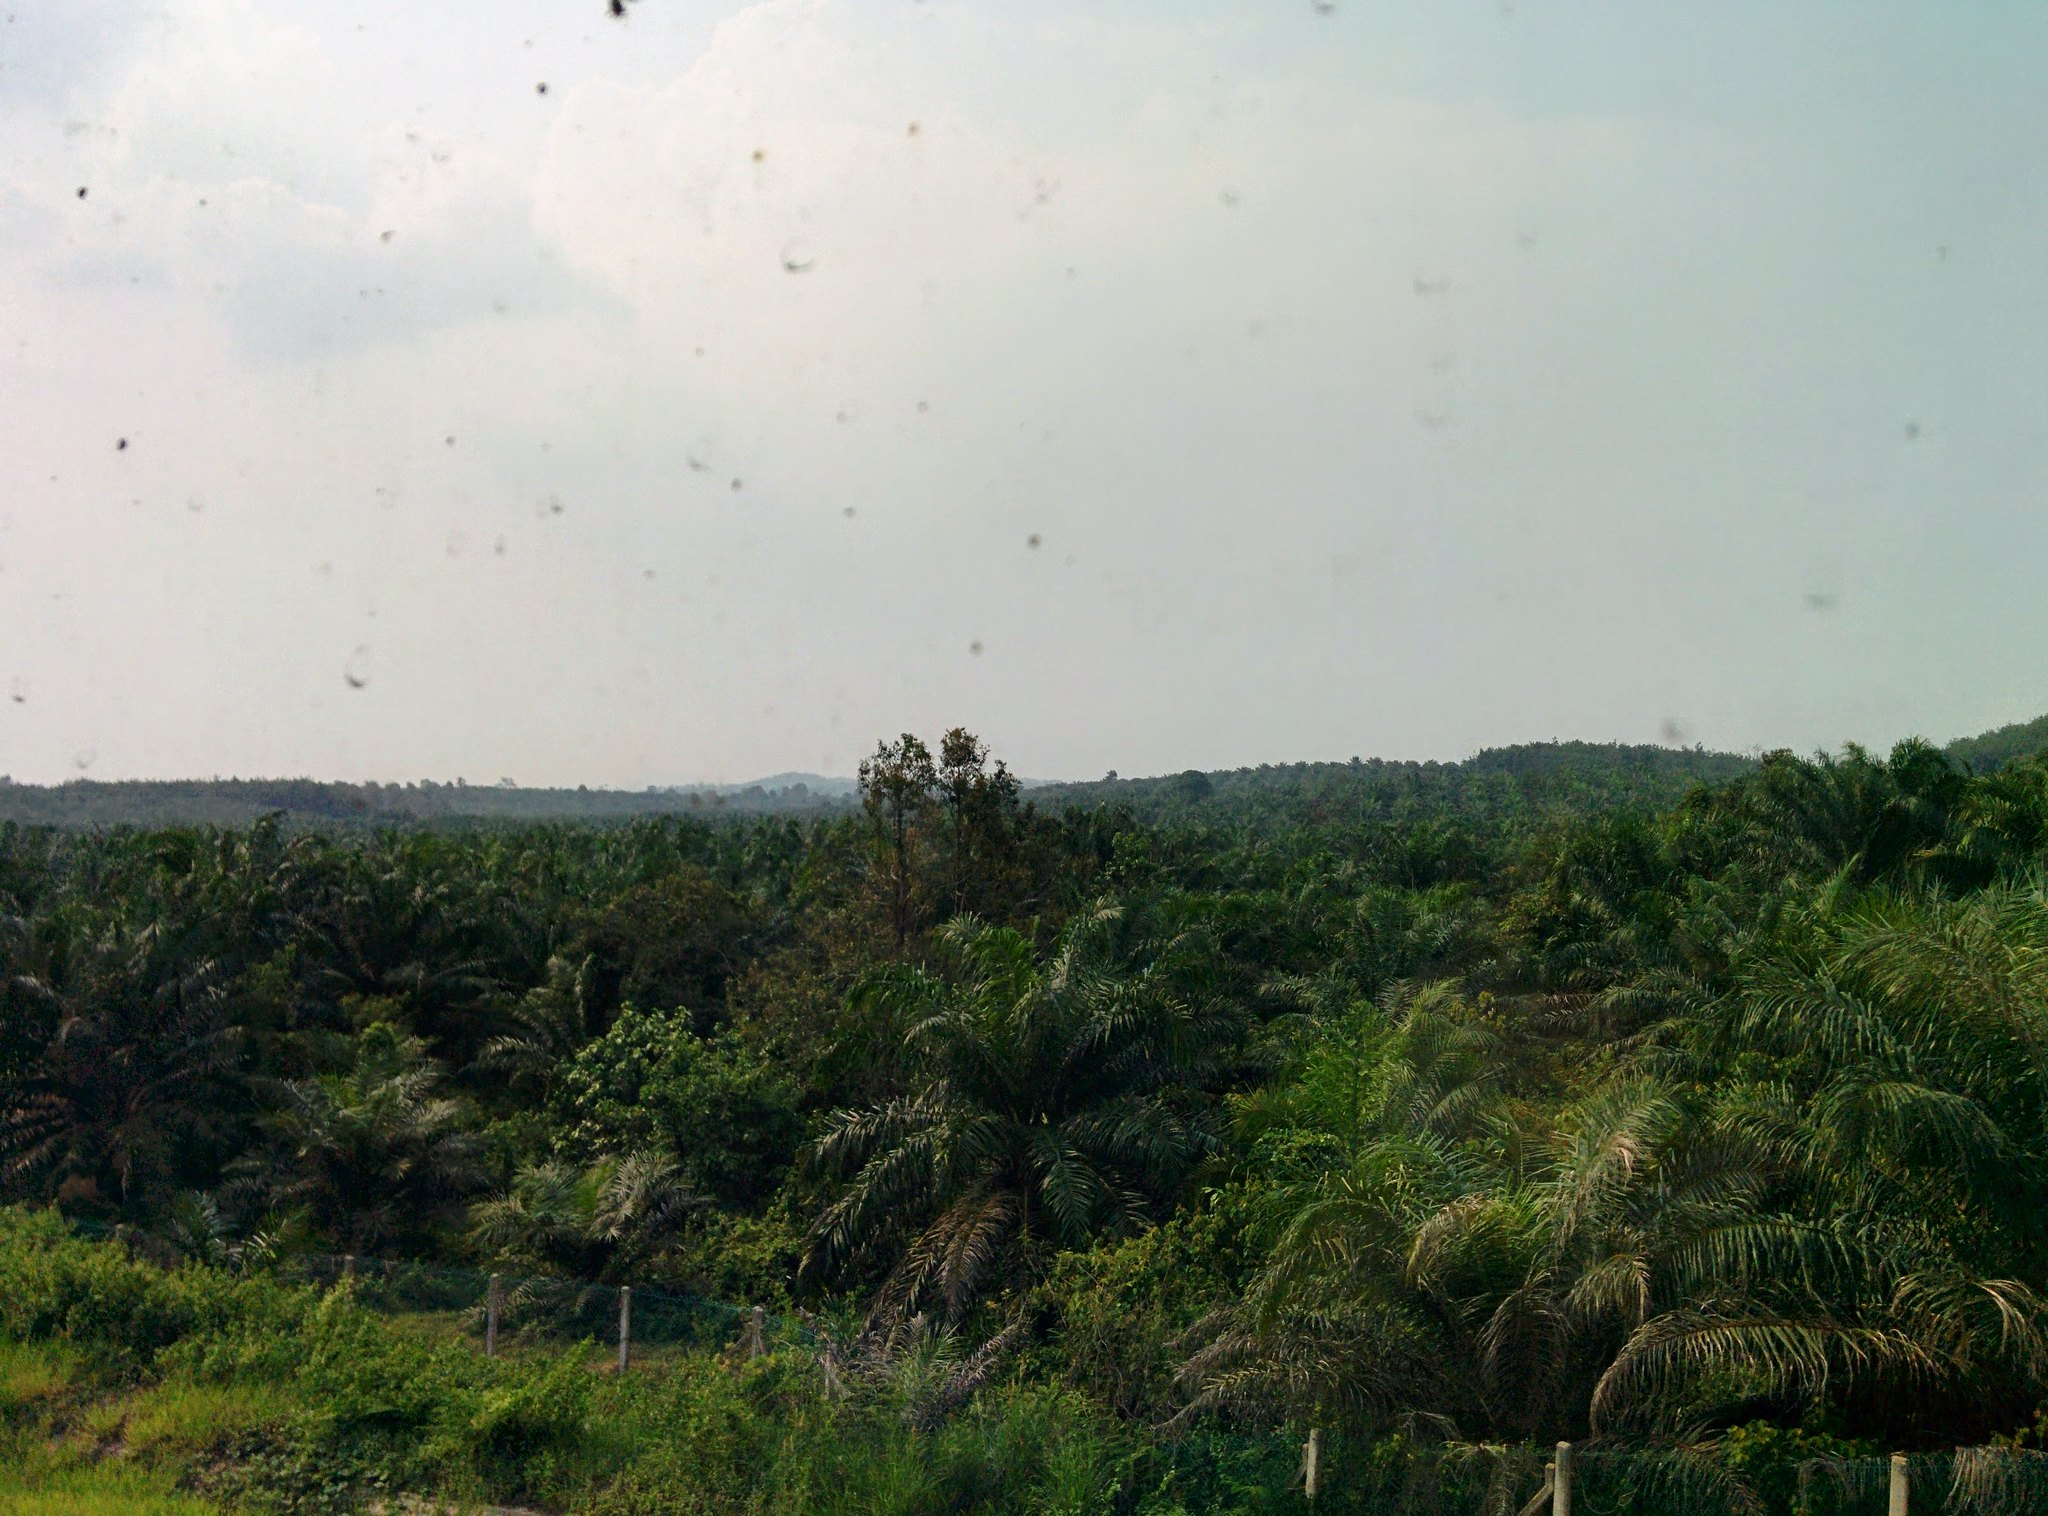 Jungle scenery from the train